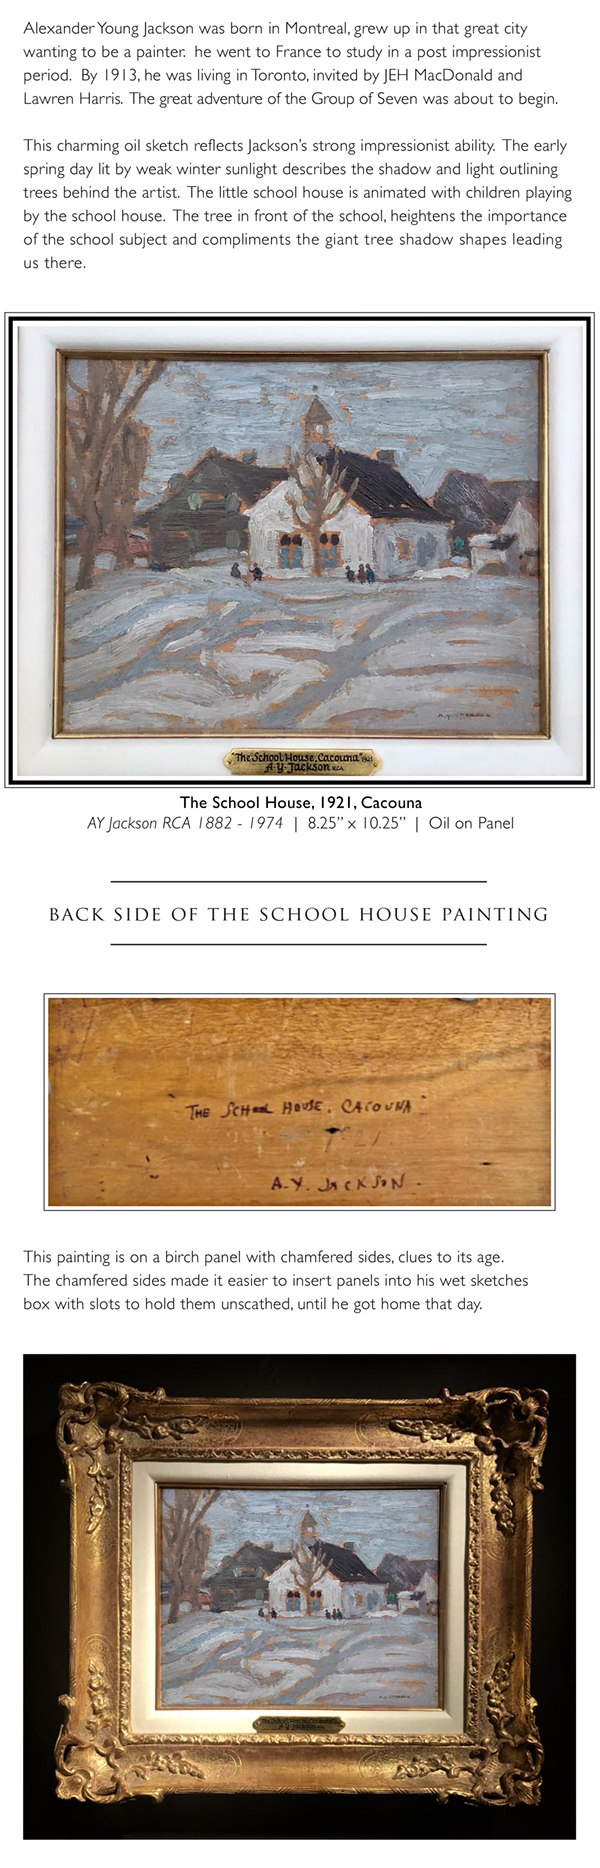 A.Y. Jackson - Sketching the Schoolhouse